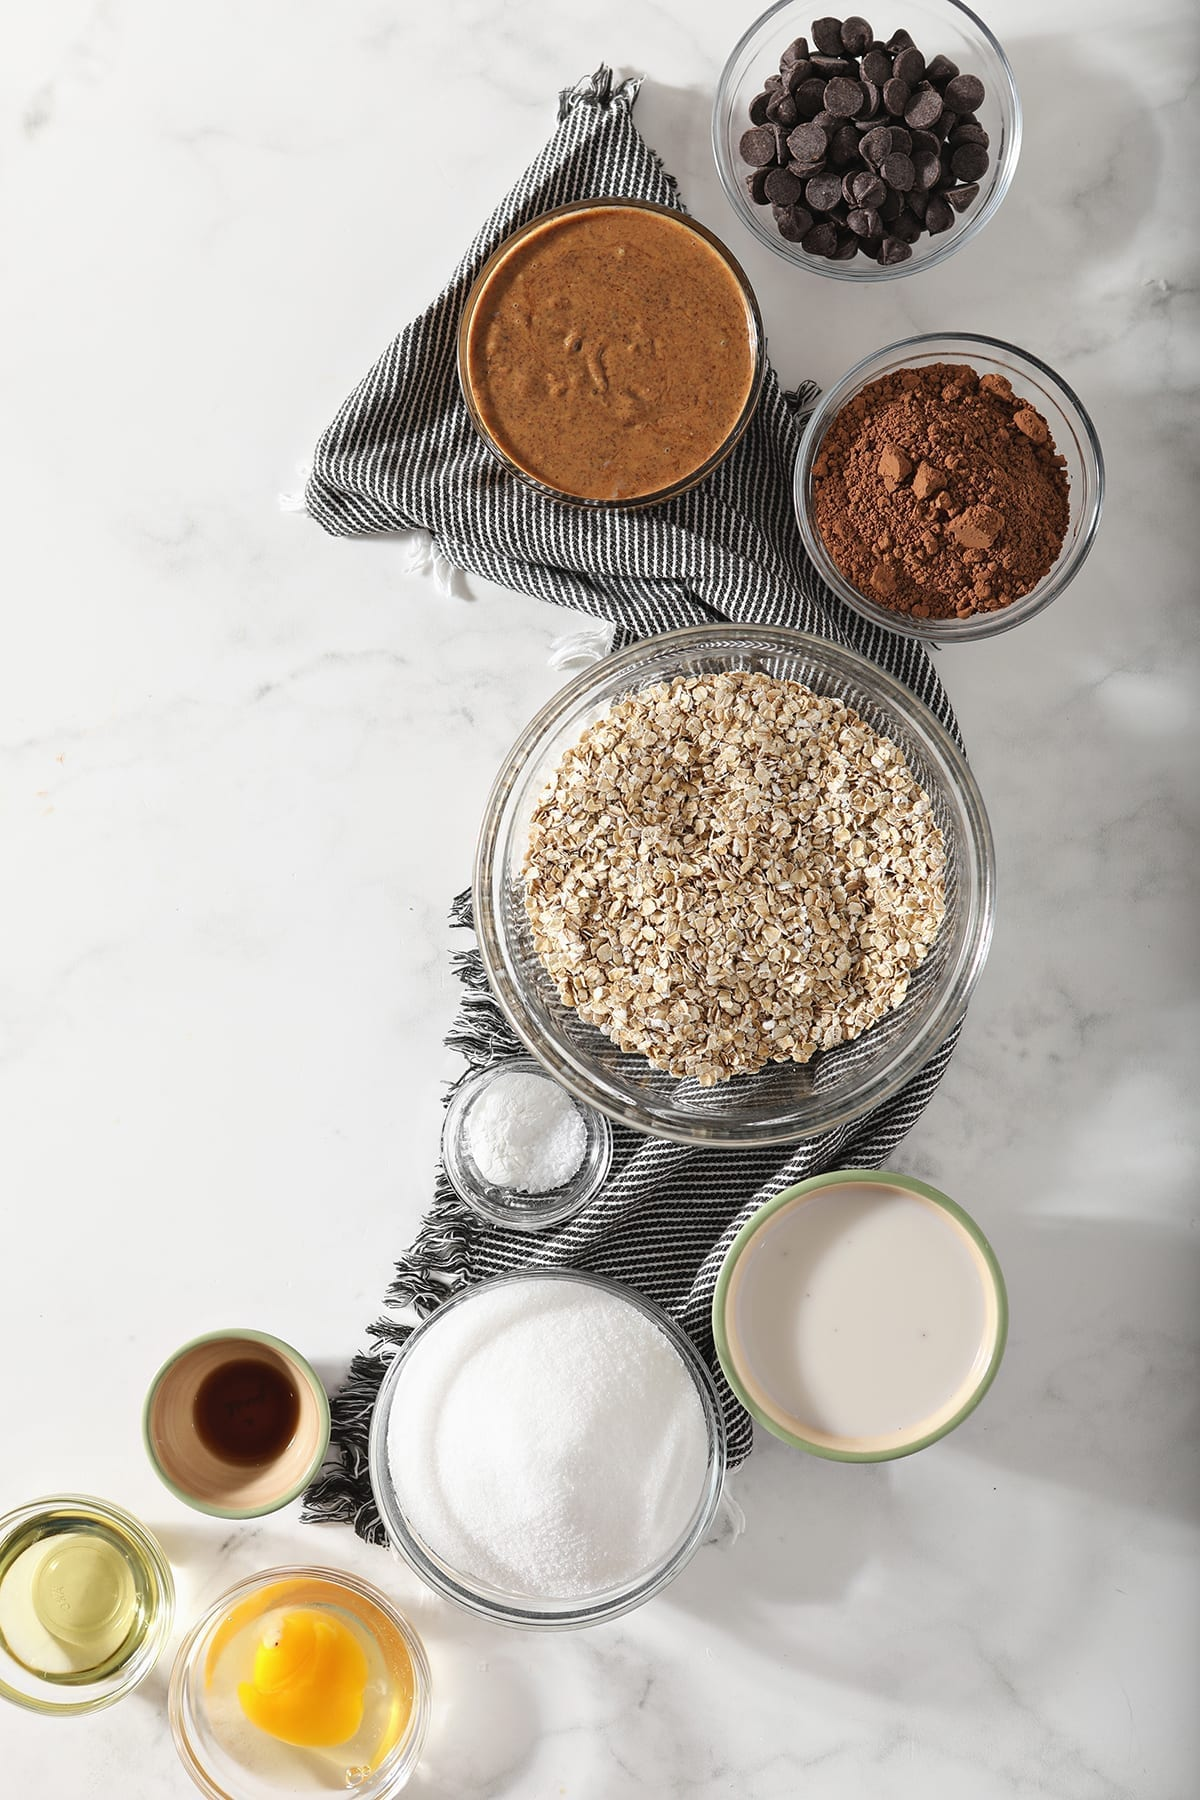 Overhead image of the ingredients for gluten free cookies on a gray and white striped towel